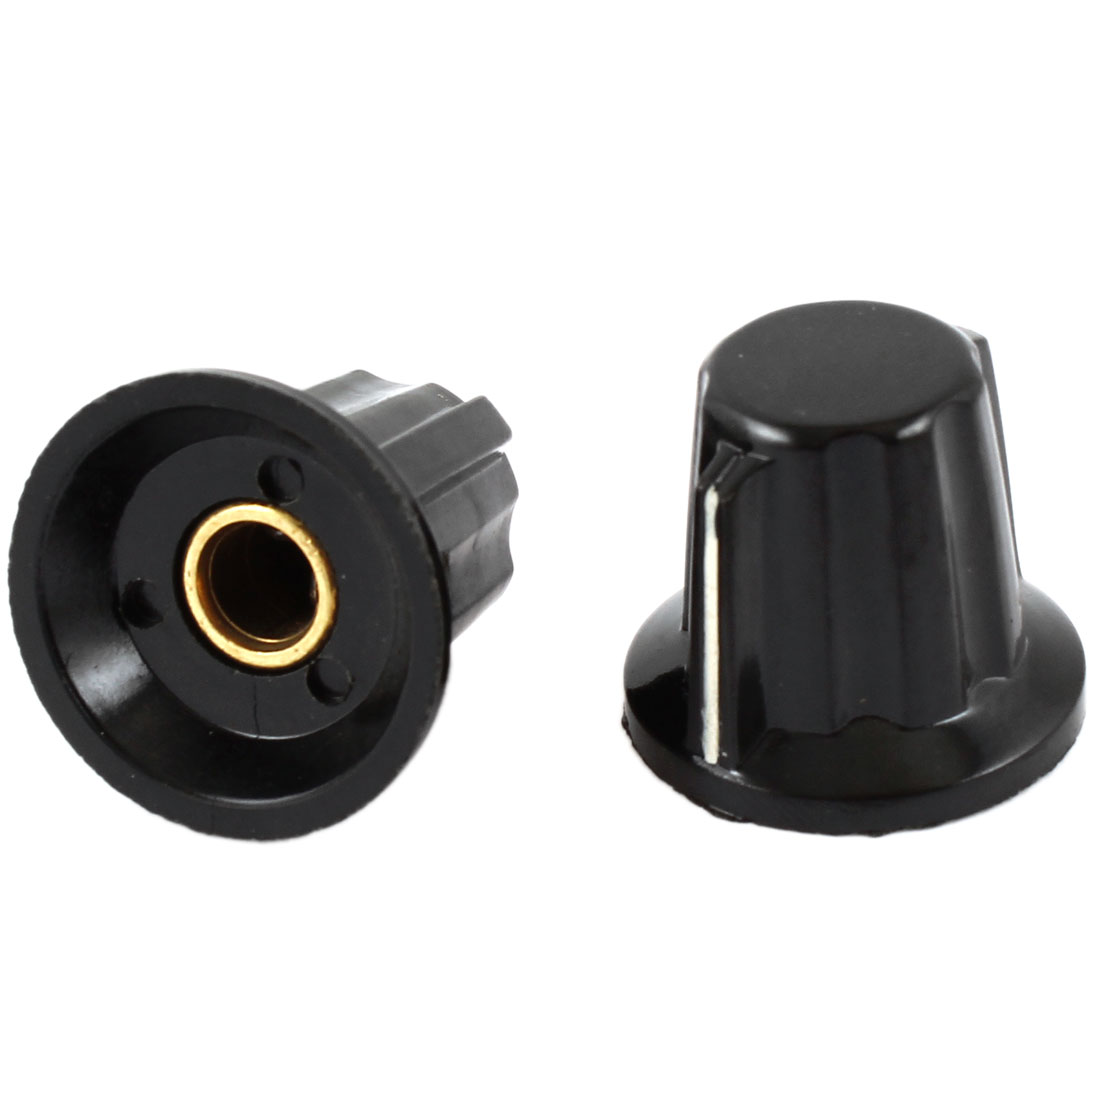 2 Pcs 24x20mm 6mm Shaft Dia Volume Control Plastic Potentiometer Knobs Caps